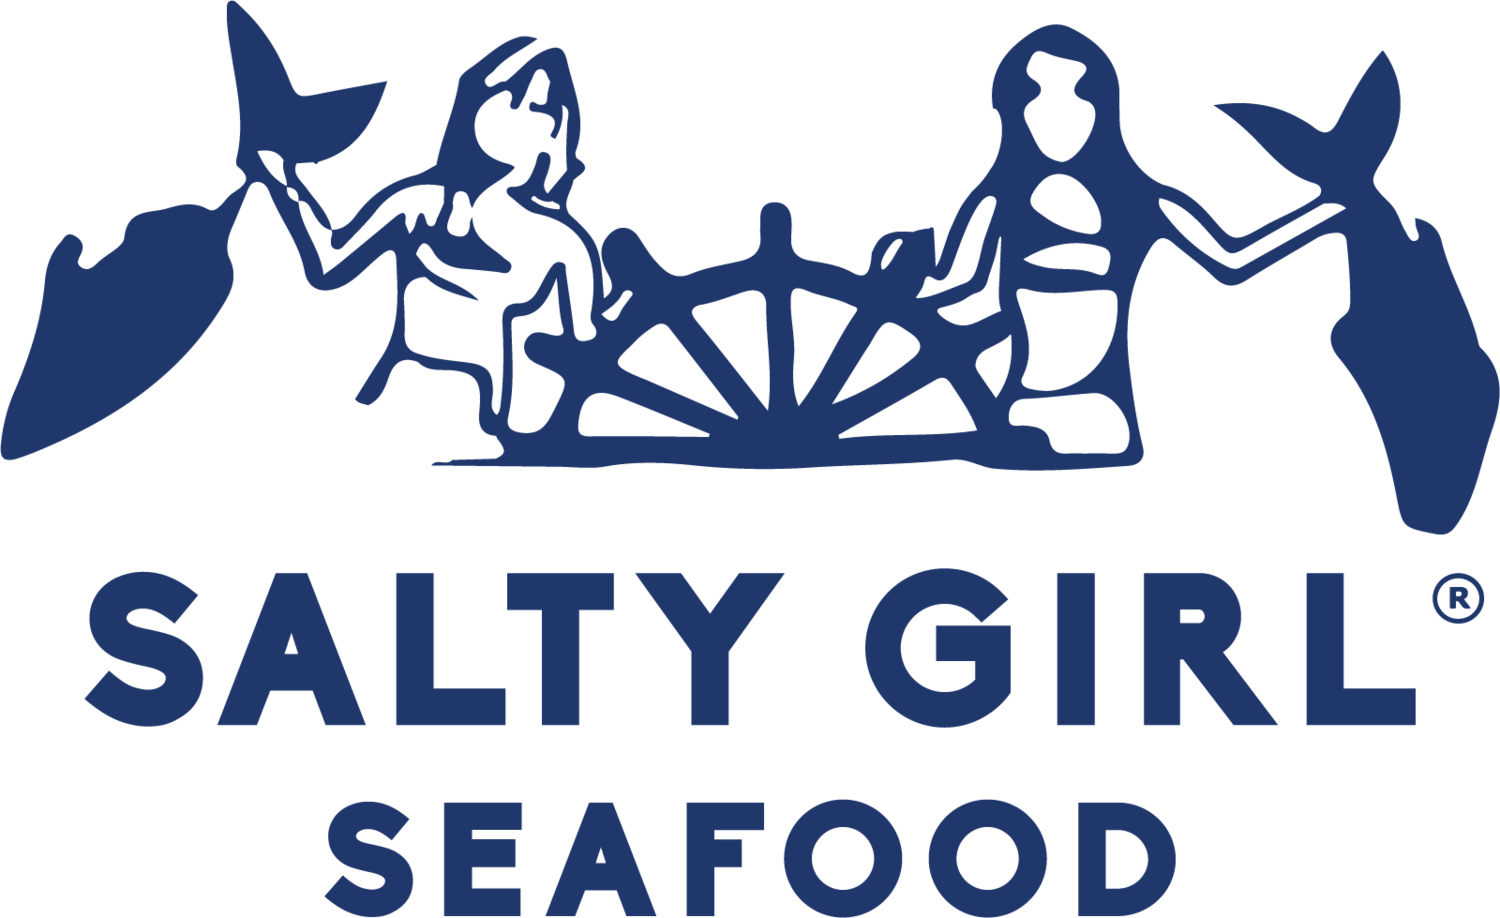 Salty Girl Seafood, Inc.